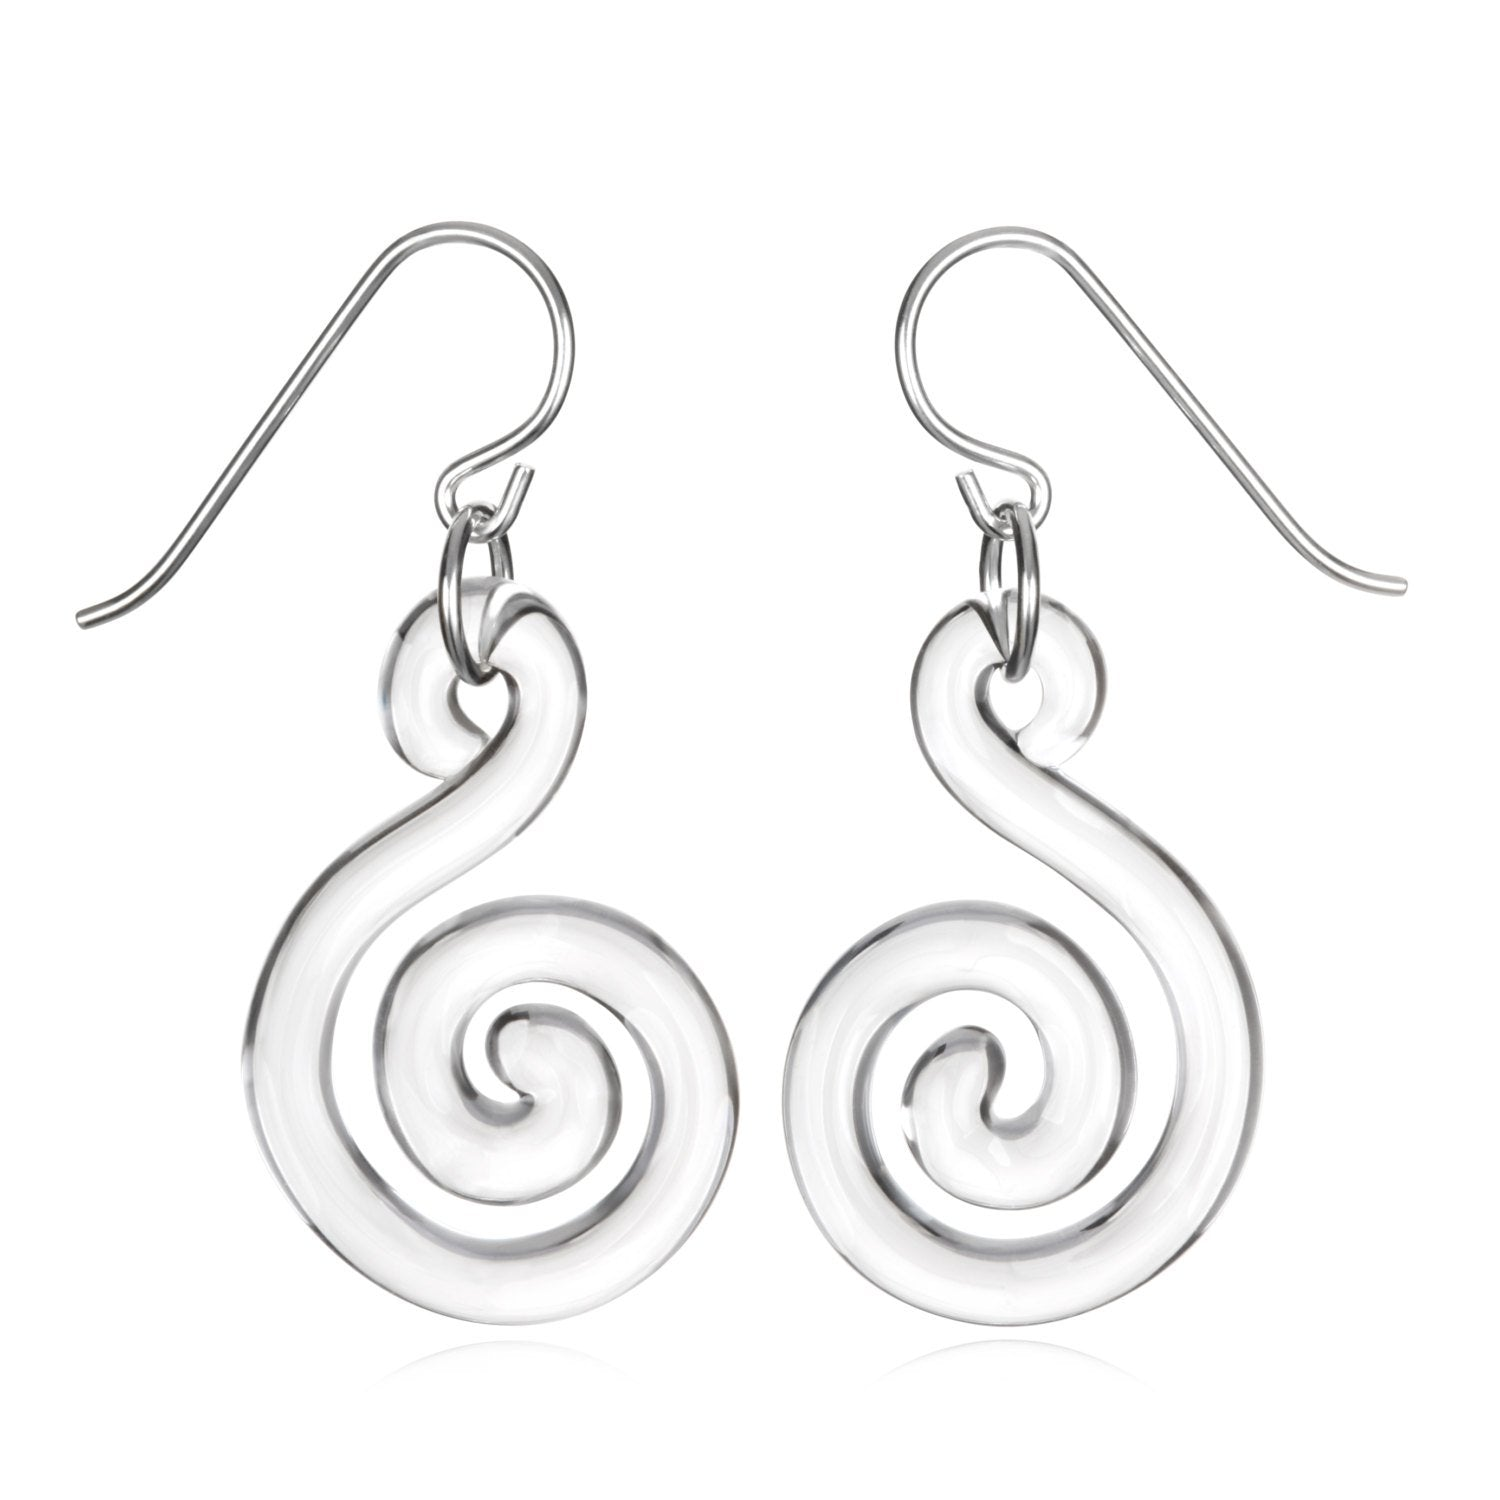 Glass Small Flat Spiral Earrings - Eclipse Gallery